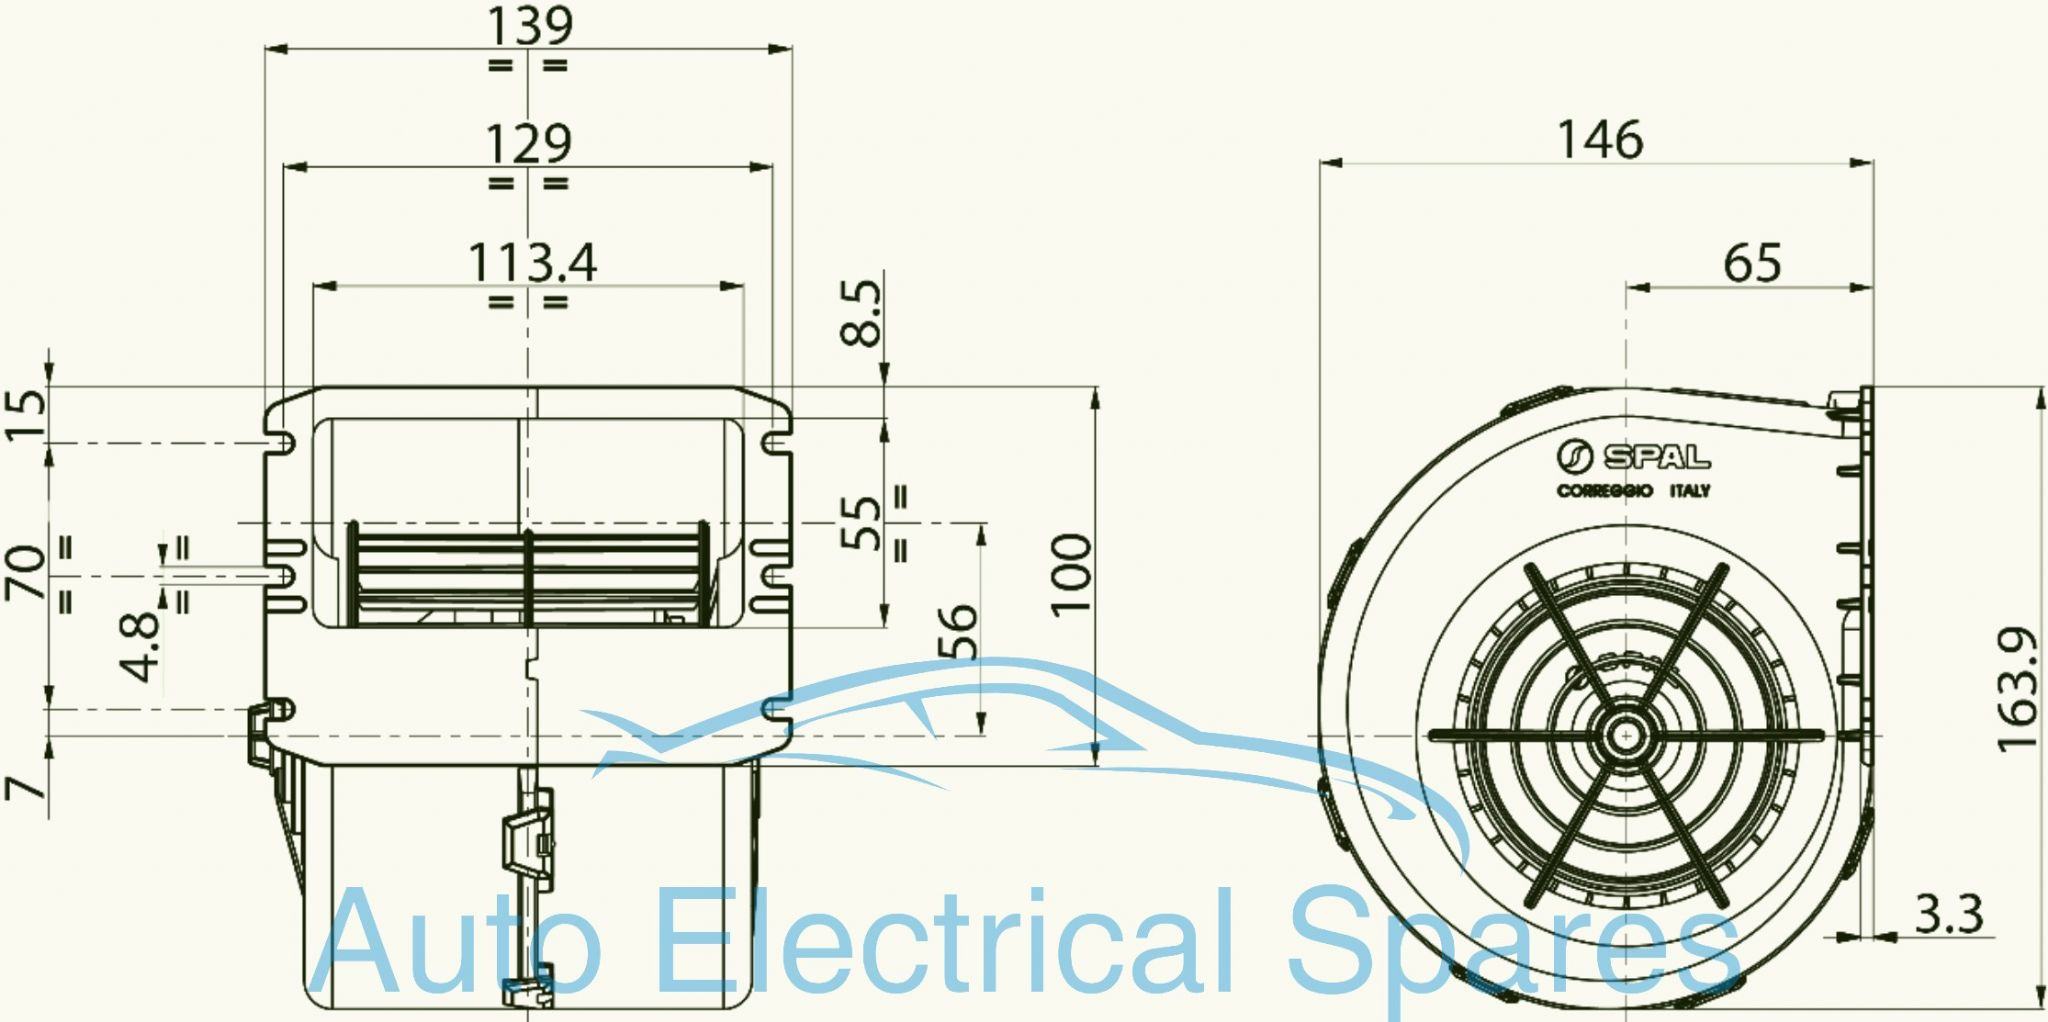 Spal 009 A22 26d A70 74d 12v Centrifugal Blower Heater Fan Enclosure Rotary Switch Wiring Diagram